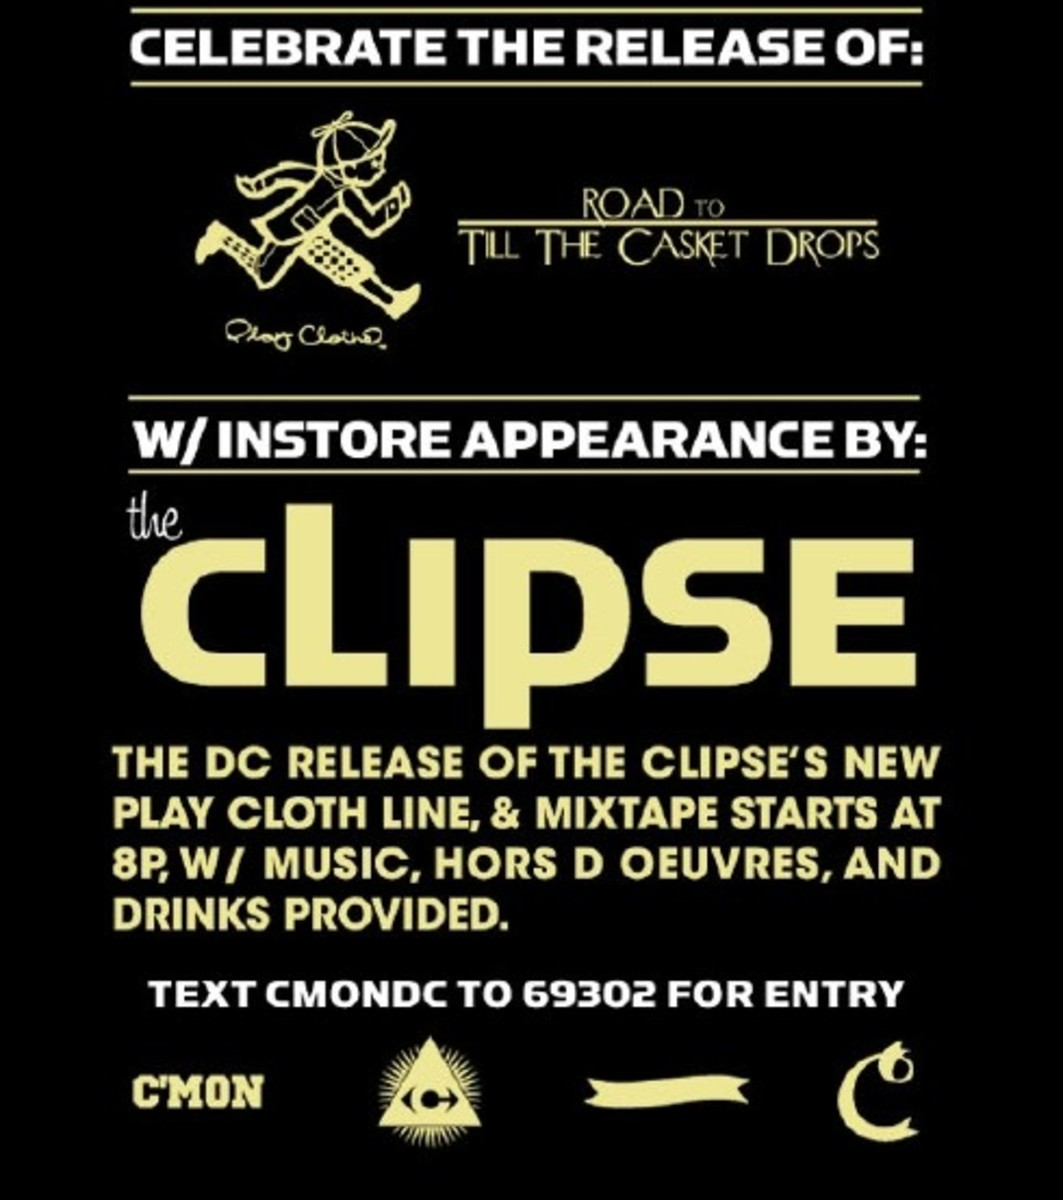 Play Cloths Mixtape Launch @ Commonwealth DC - 1